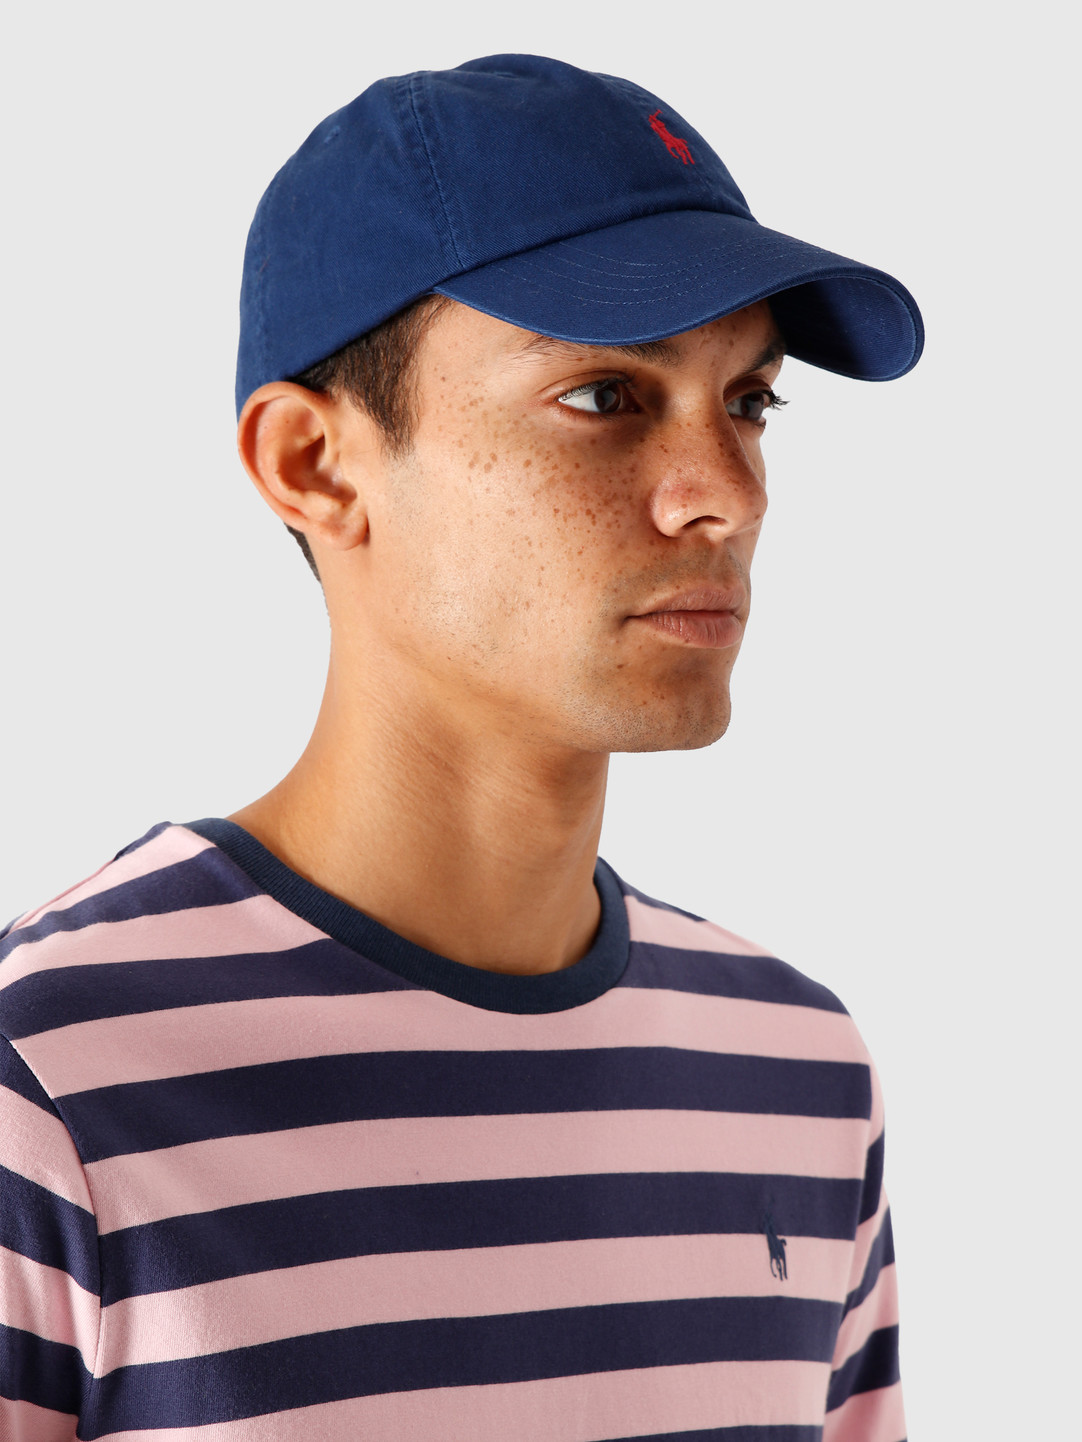 Polo Ralph Lauren Polo Ralph Lauren Classic Sport Cap With Small PP Holiday SaPPhire 710673213053